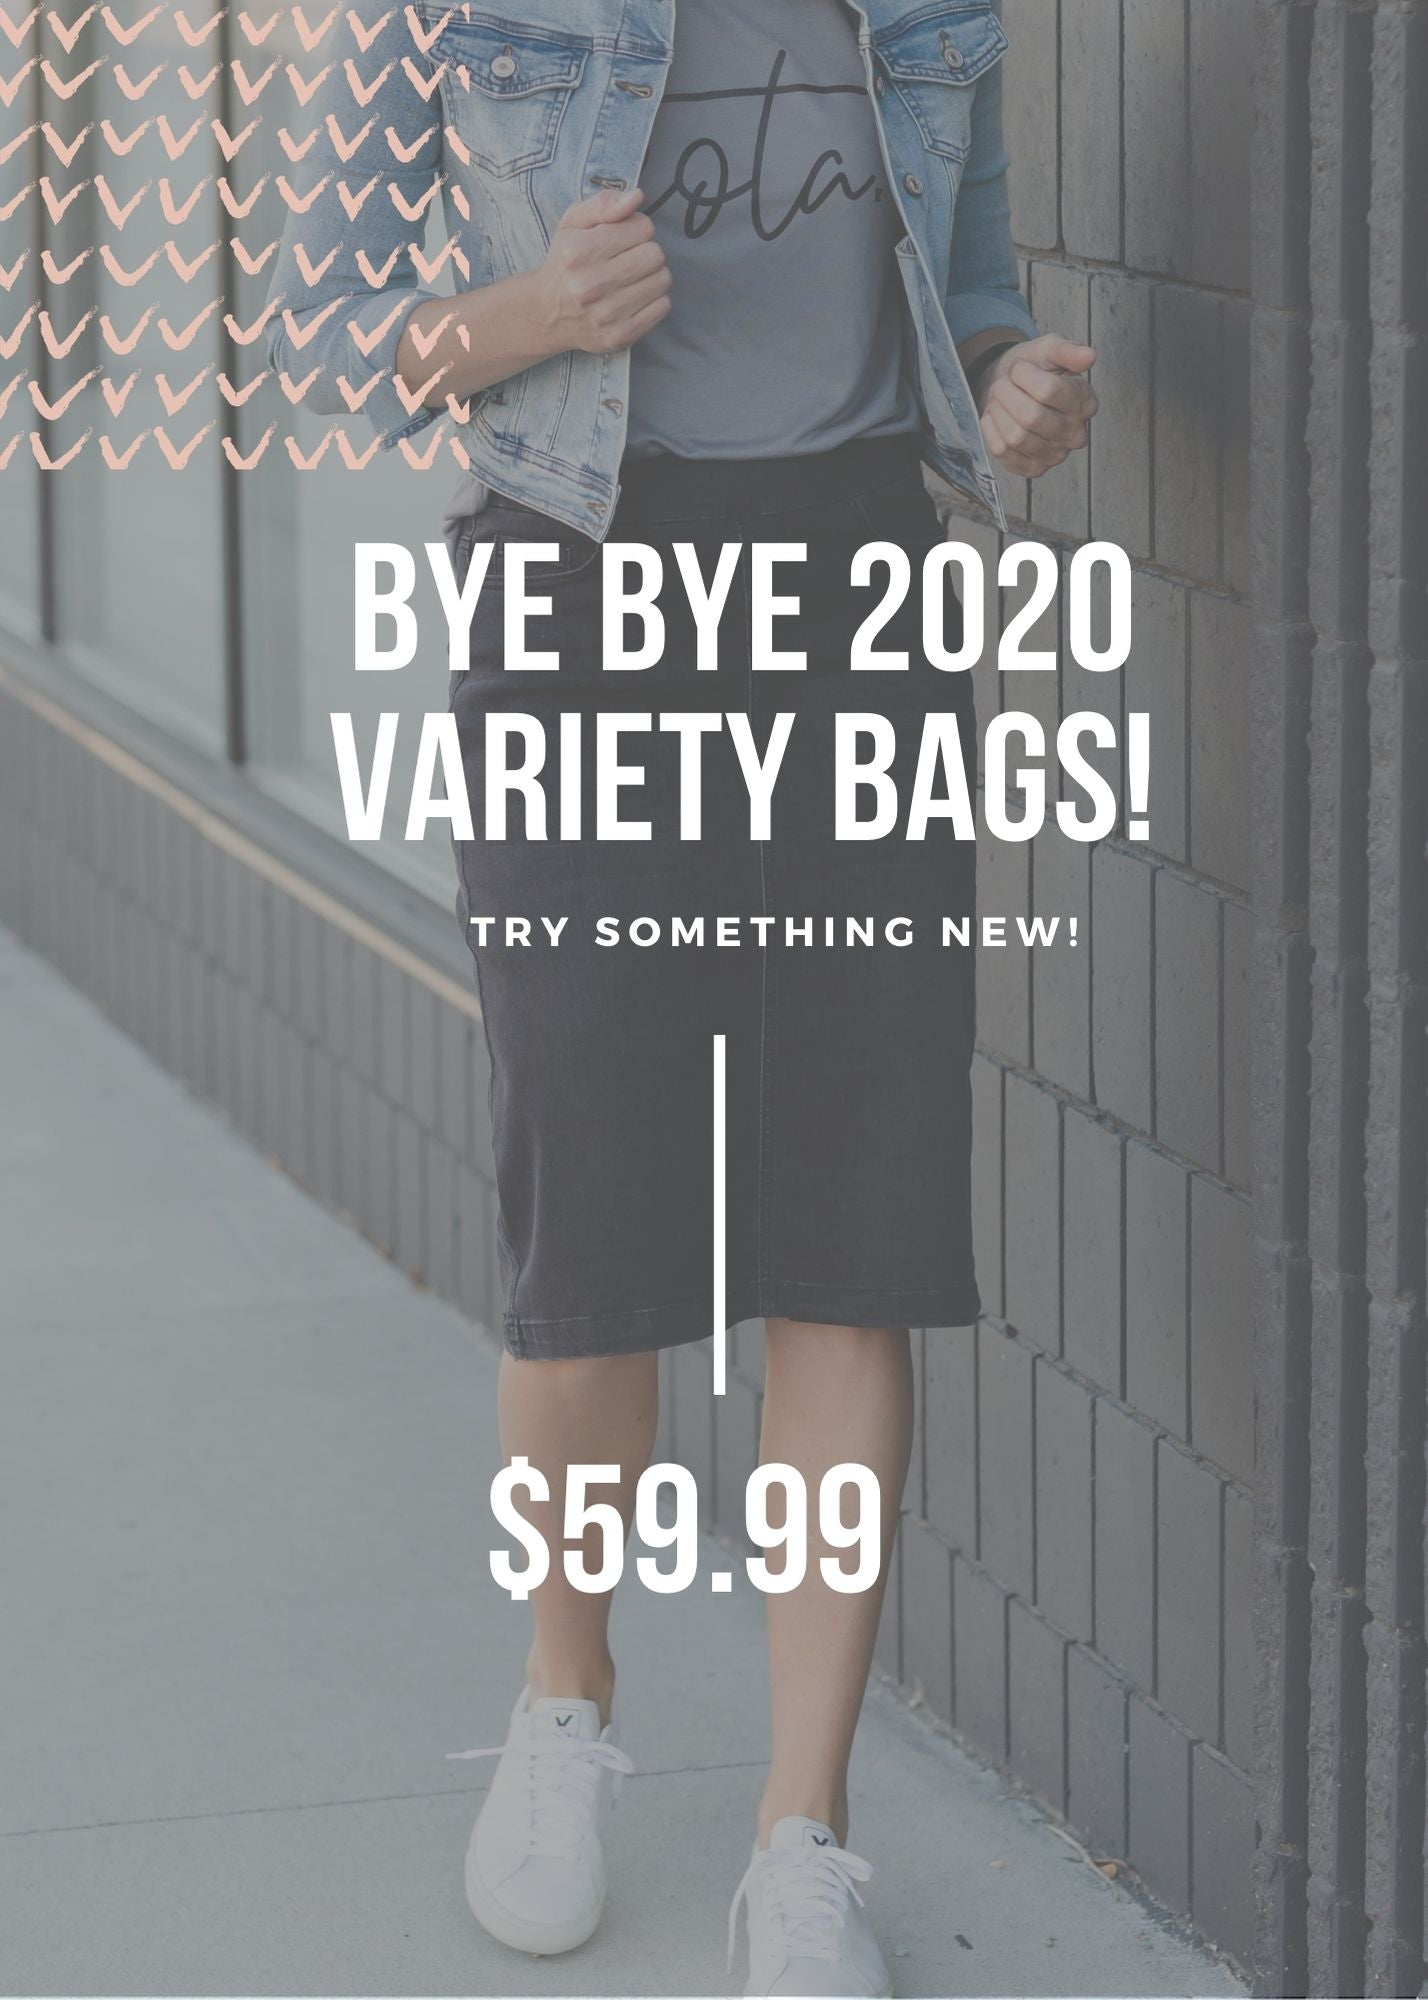 GOODBYE 2020 VARIETY BAGS!